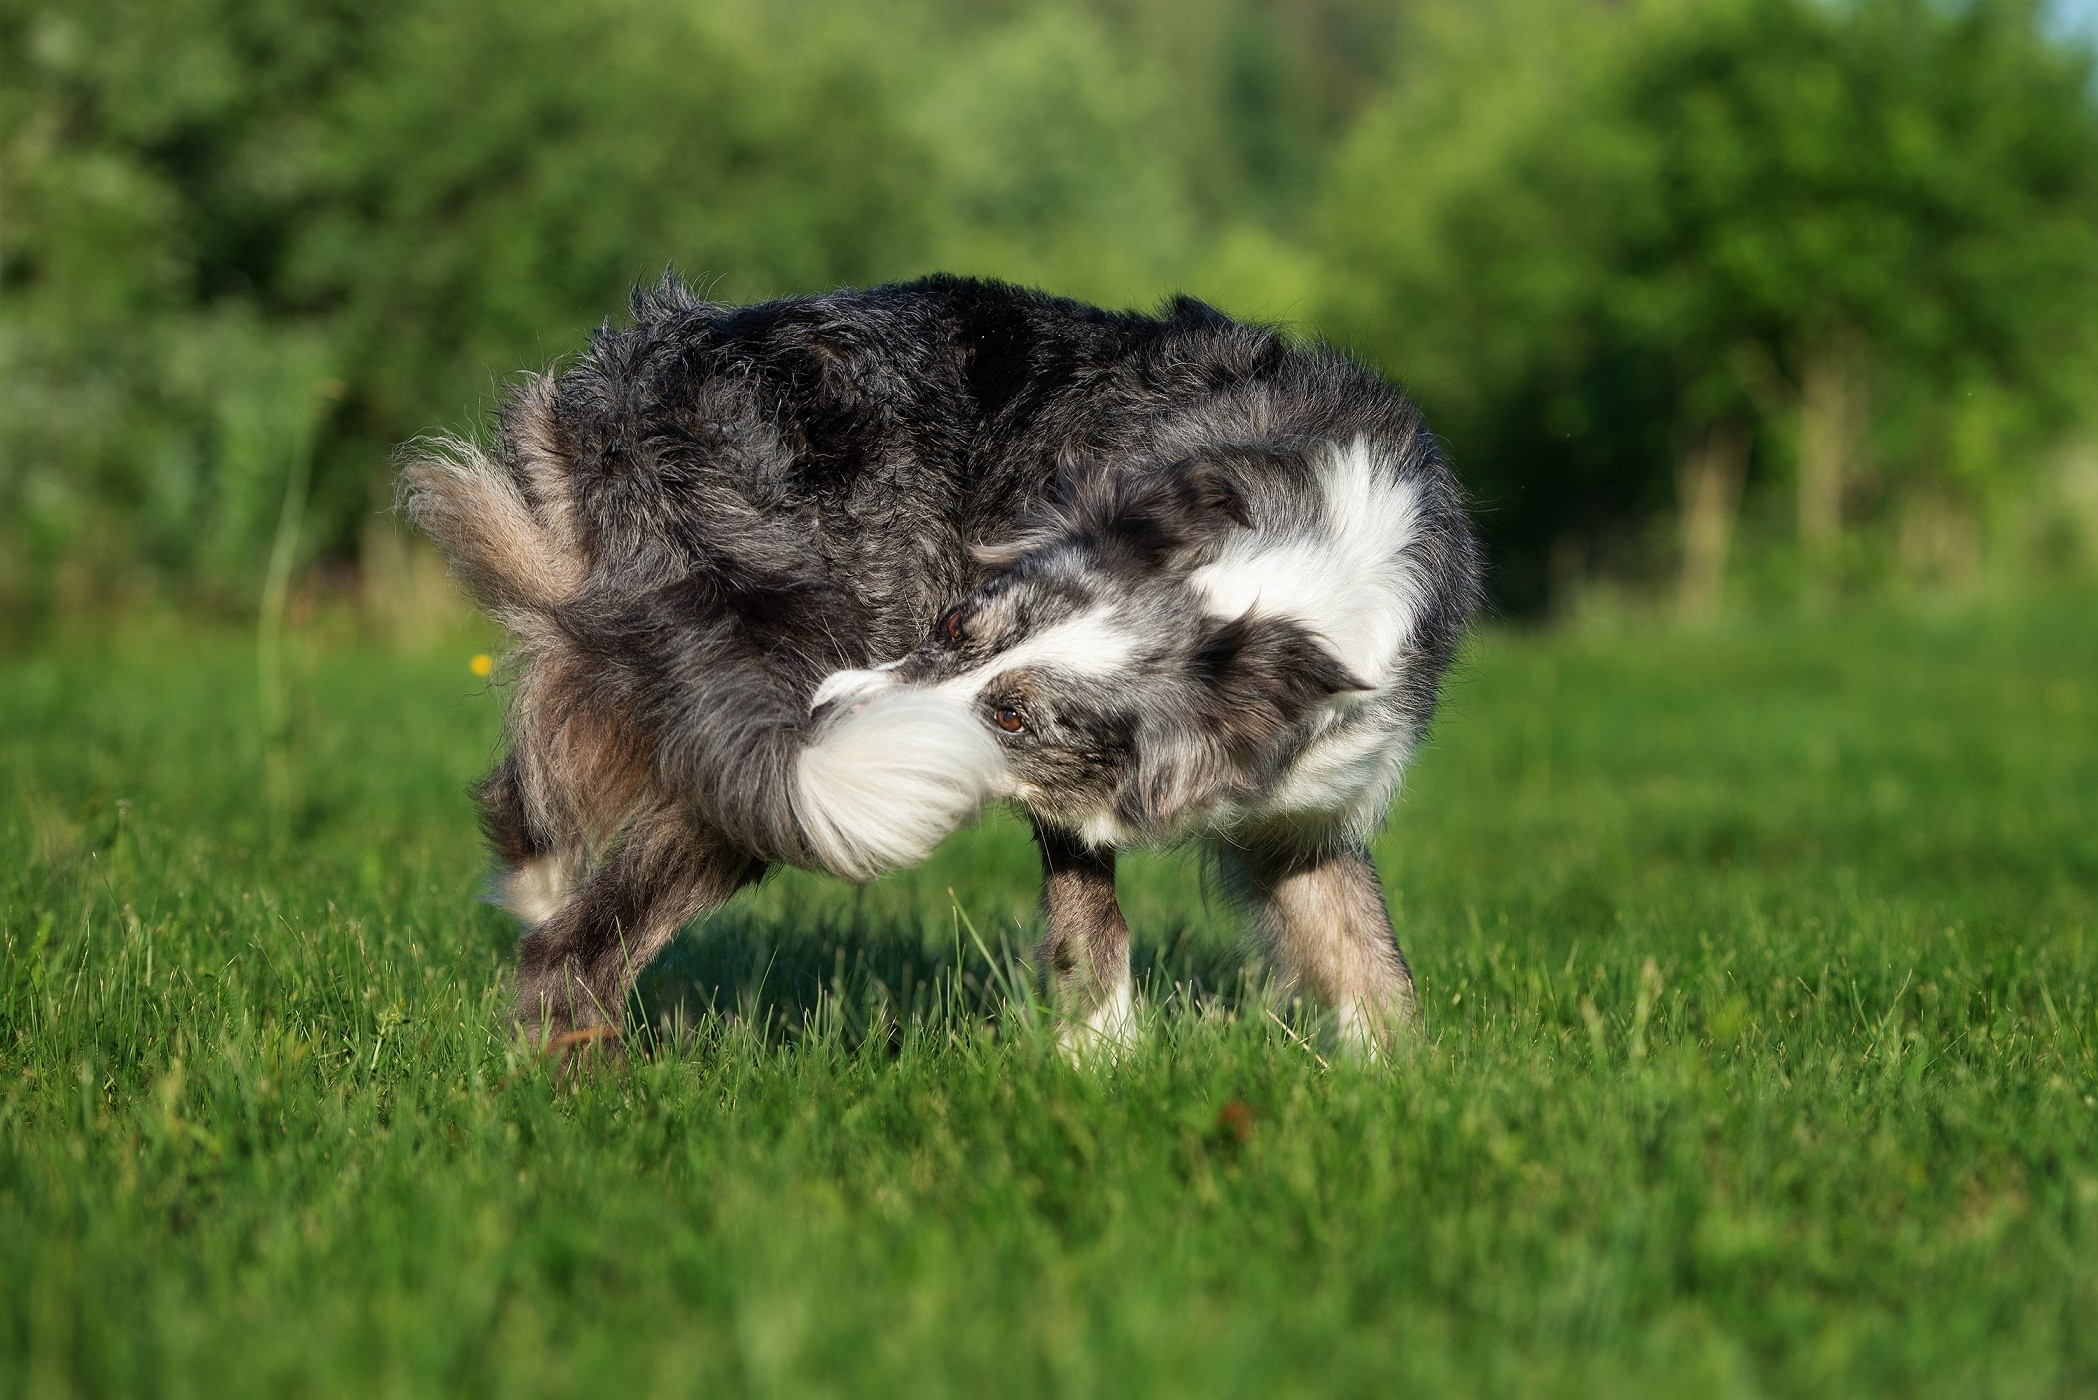 The Reasons Behind These Weird Dog Behaviors Might Surprise You